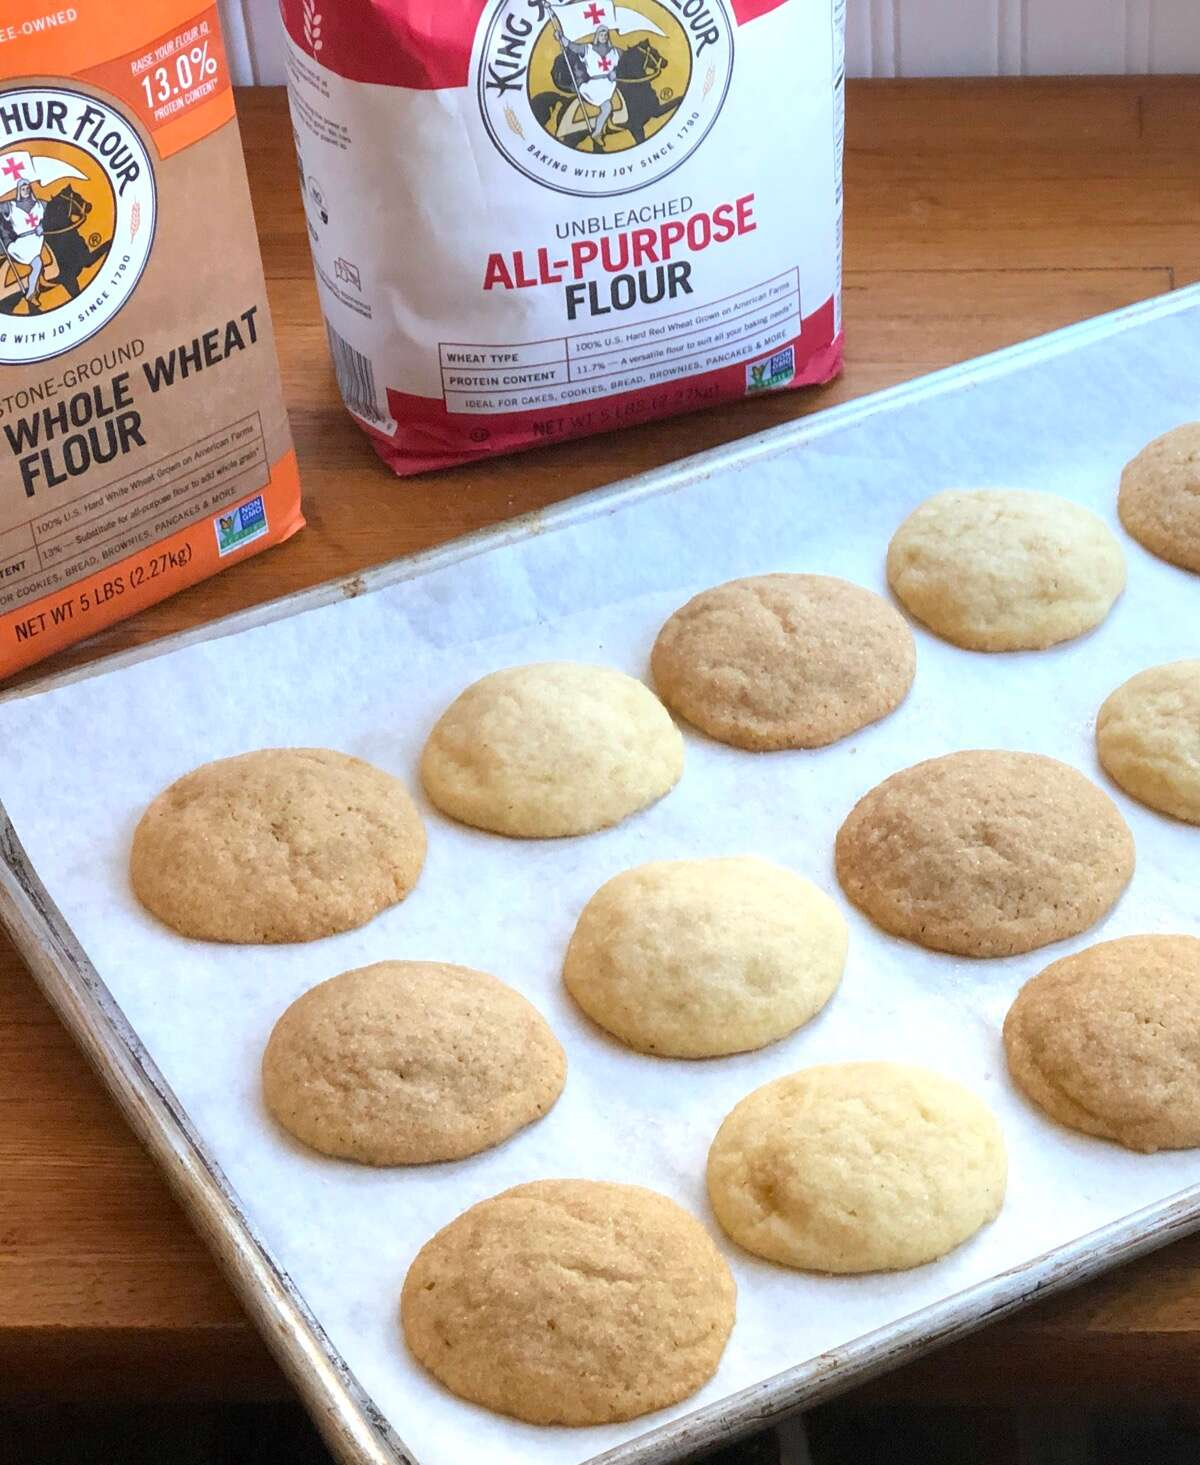 Sugar cookies n a baking sheet, half made with whole wheat flour, half with all-purpose flour.